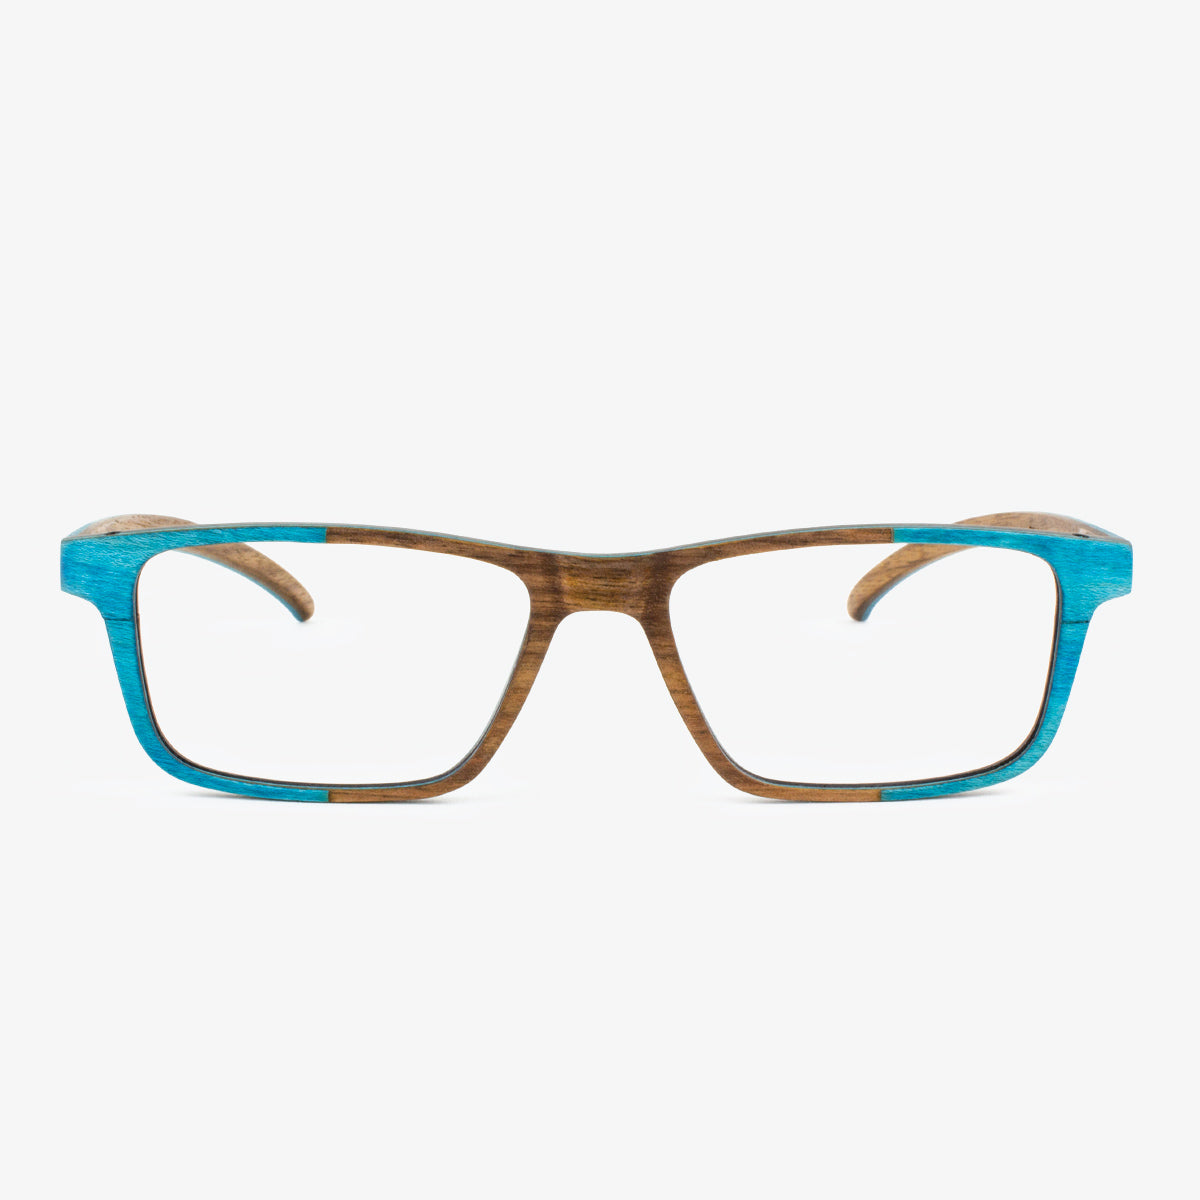 Brickell - Total Wood Eyeglasses